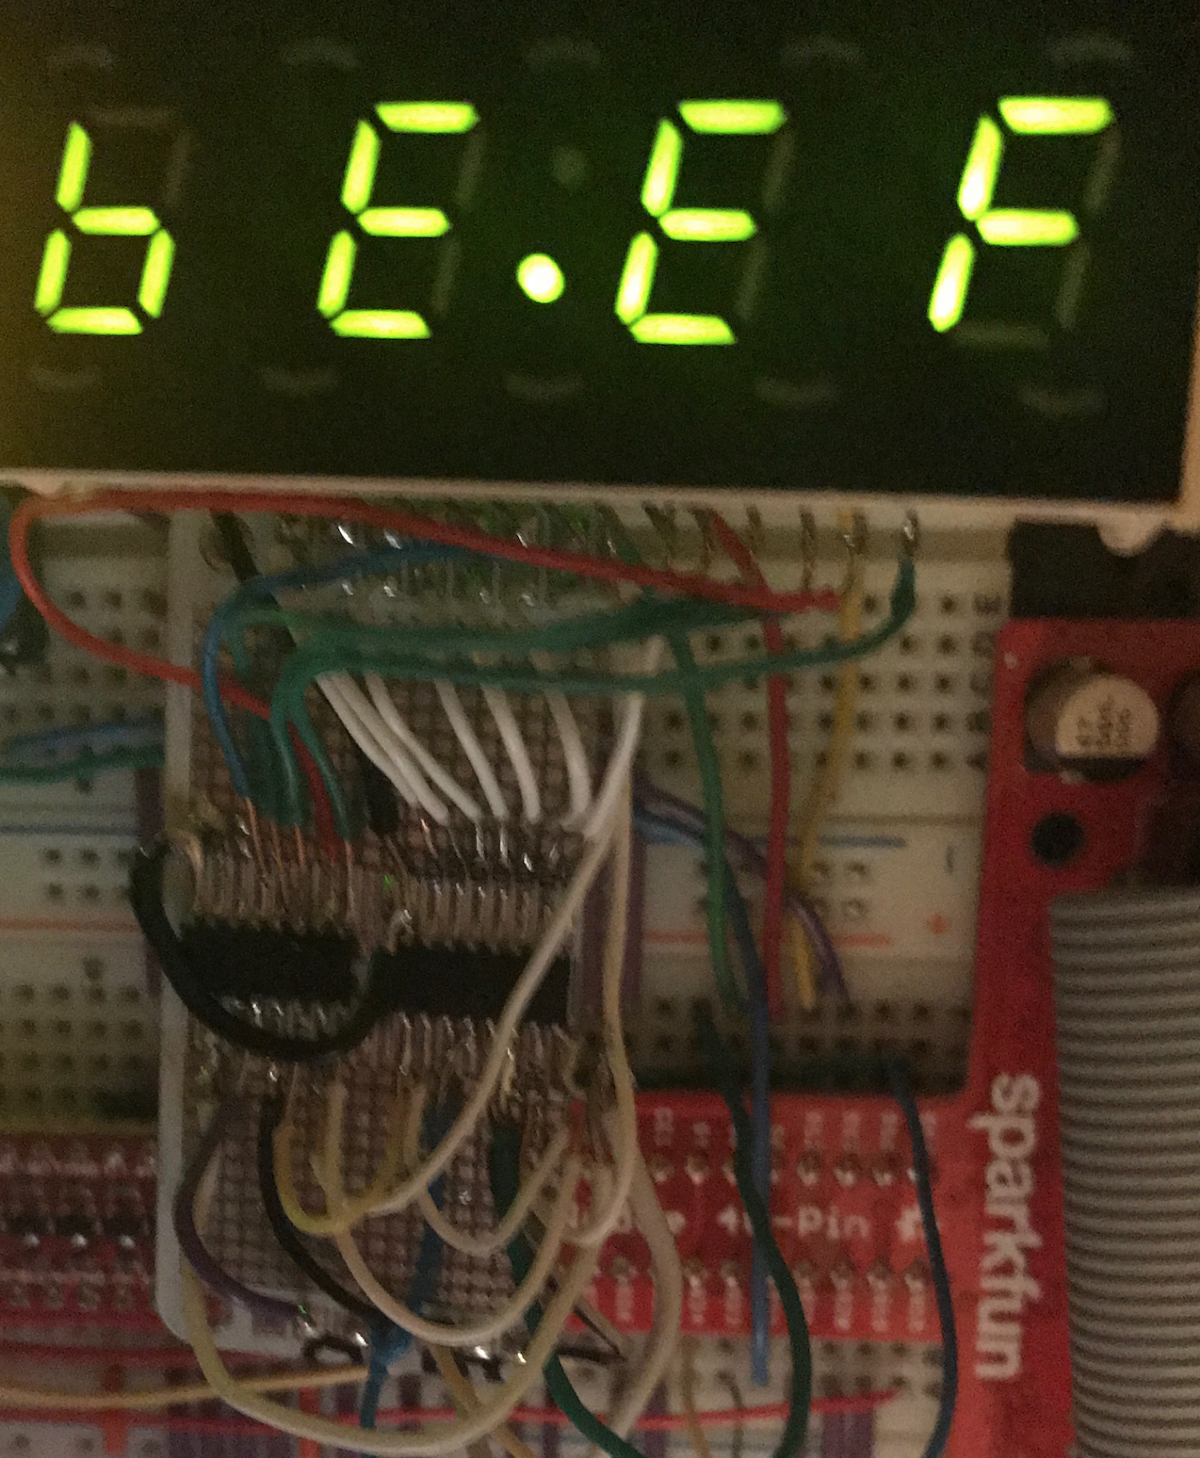 4x7 Segment Led Display As A Digital Clock Using Two 74hct595 8 Bit The 4digit 7segment Driver Circuit We Will Build Shift Registers